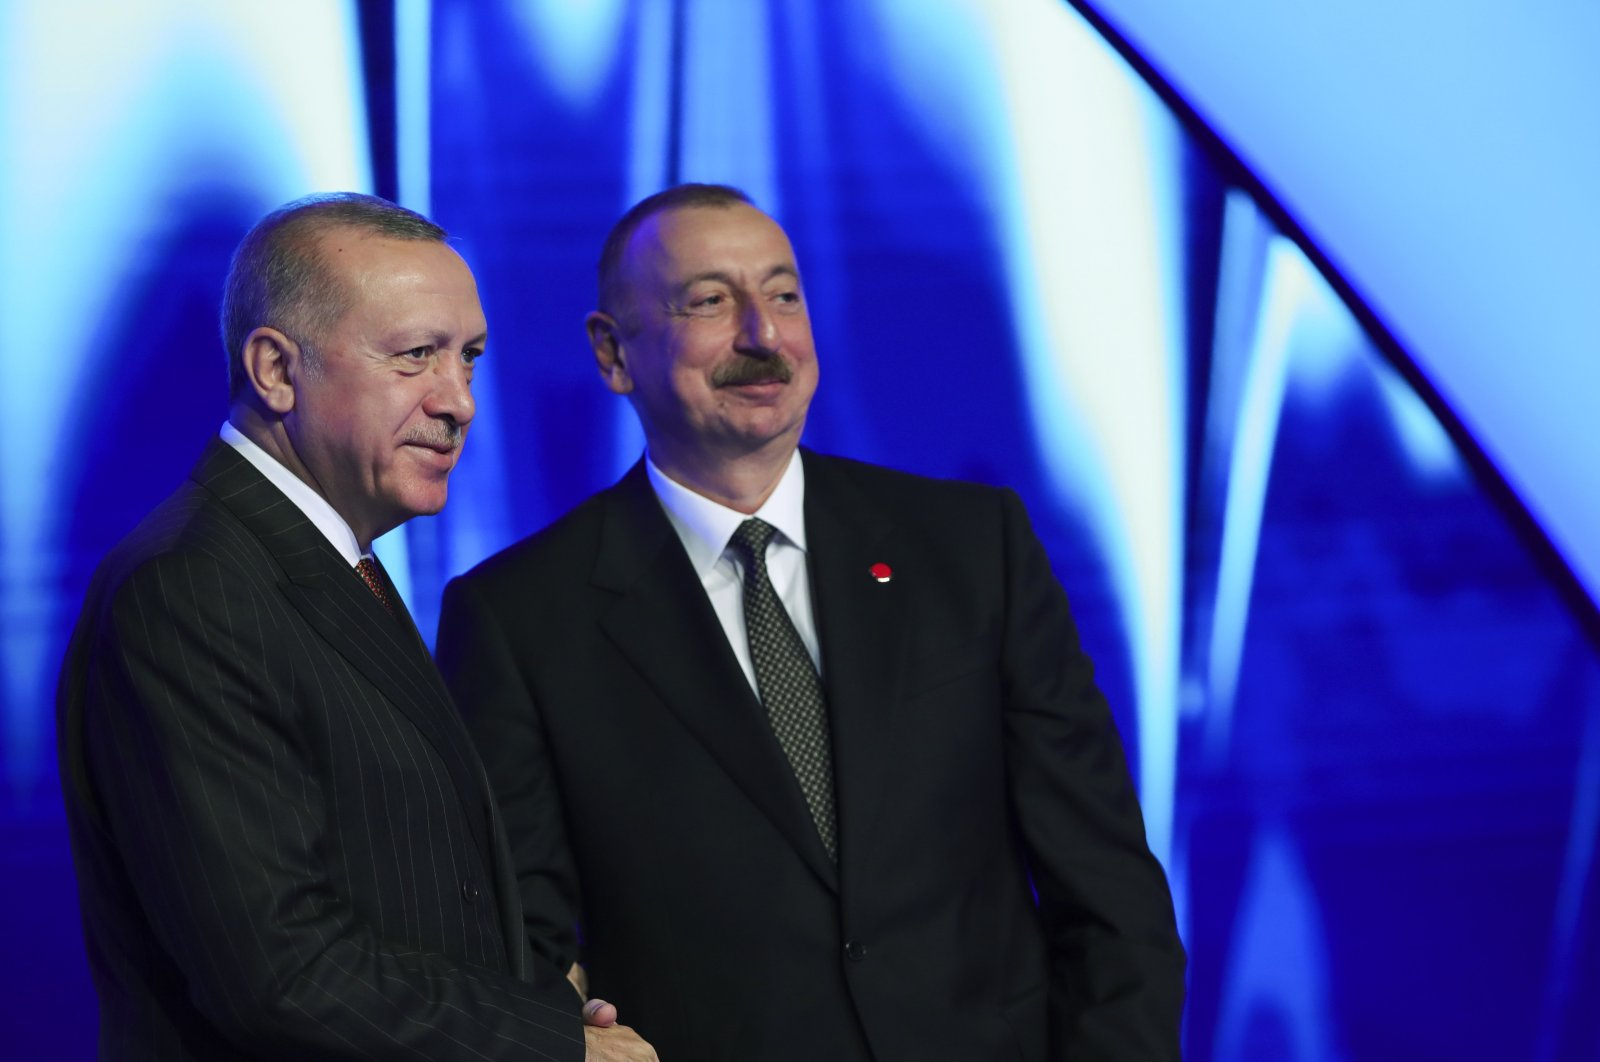 President Recep Tayyip Erdoğan and Azerbaijan's President Ilham Aliyev during an opening ceremony of a part of the Trans-Anatolian Natural Gas Pipeline (TANAP), in the western city of Edirne, Dec. 2, 2019. (AA Photo)